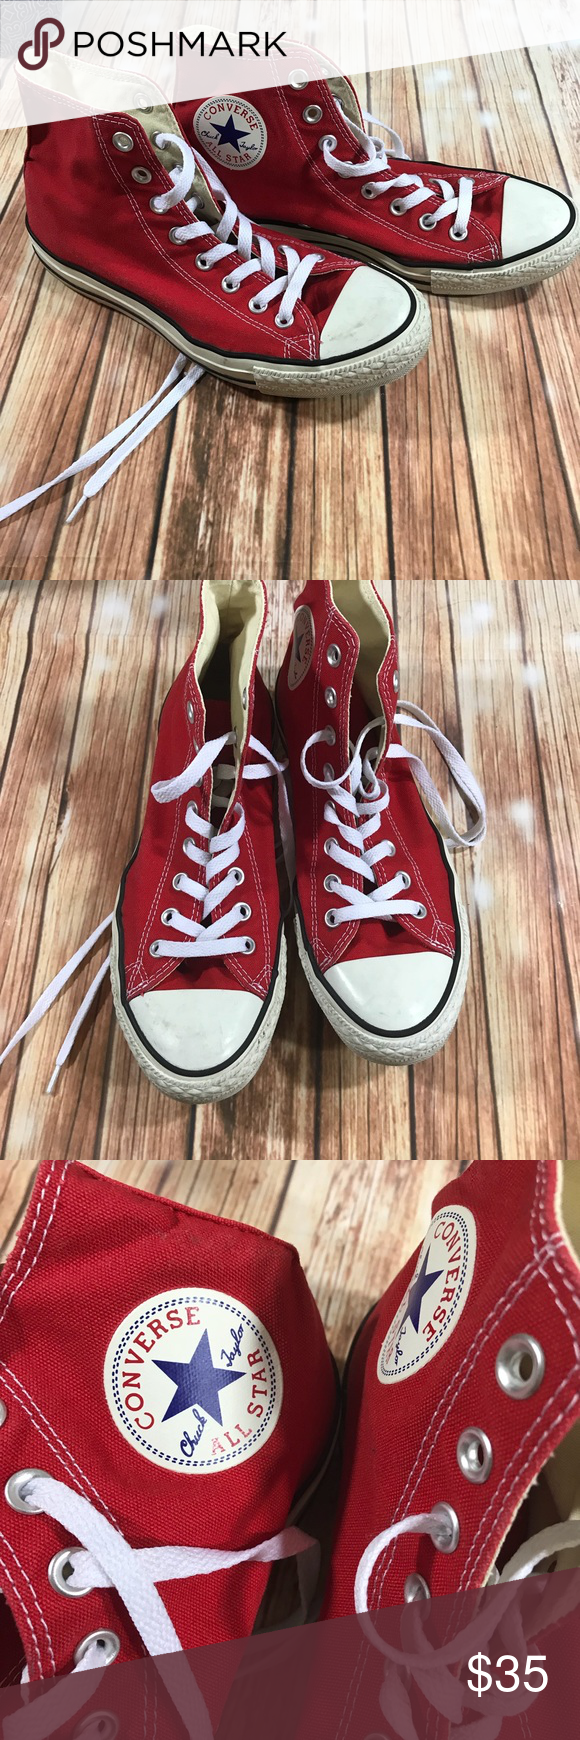 41bb9a07510f All star chuck Taylor red and white converse Gently used condition